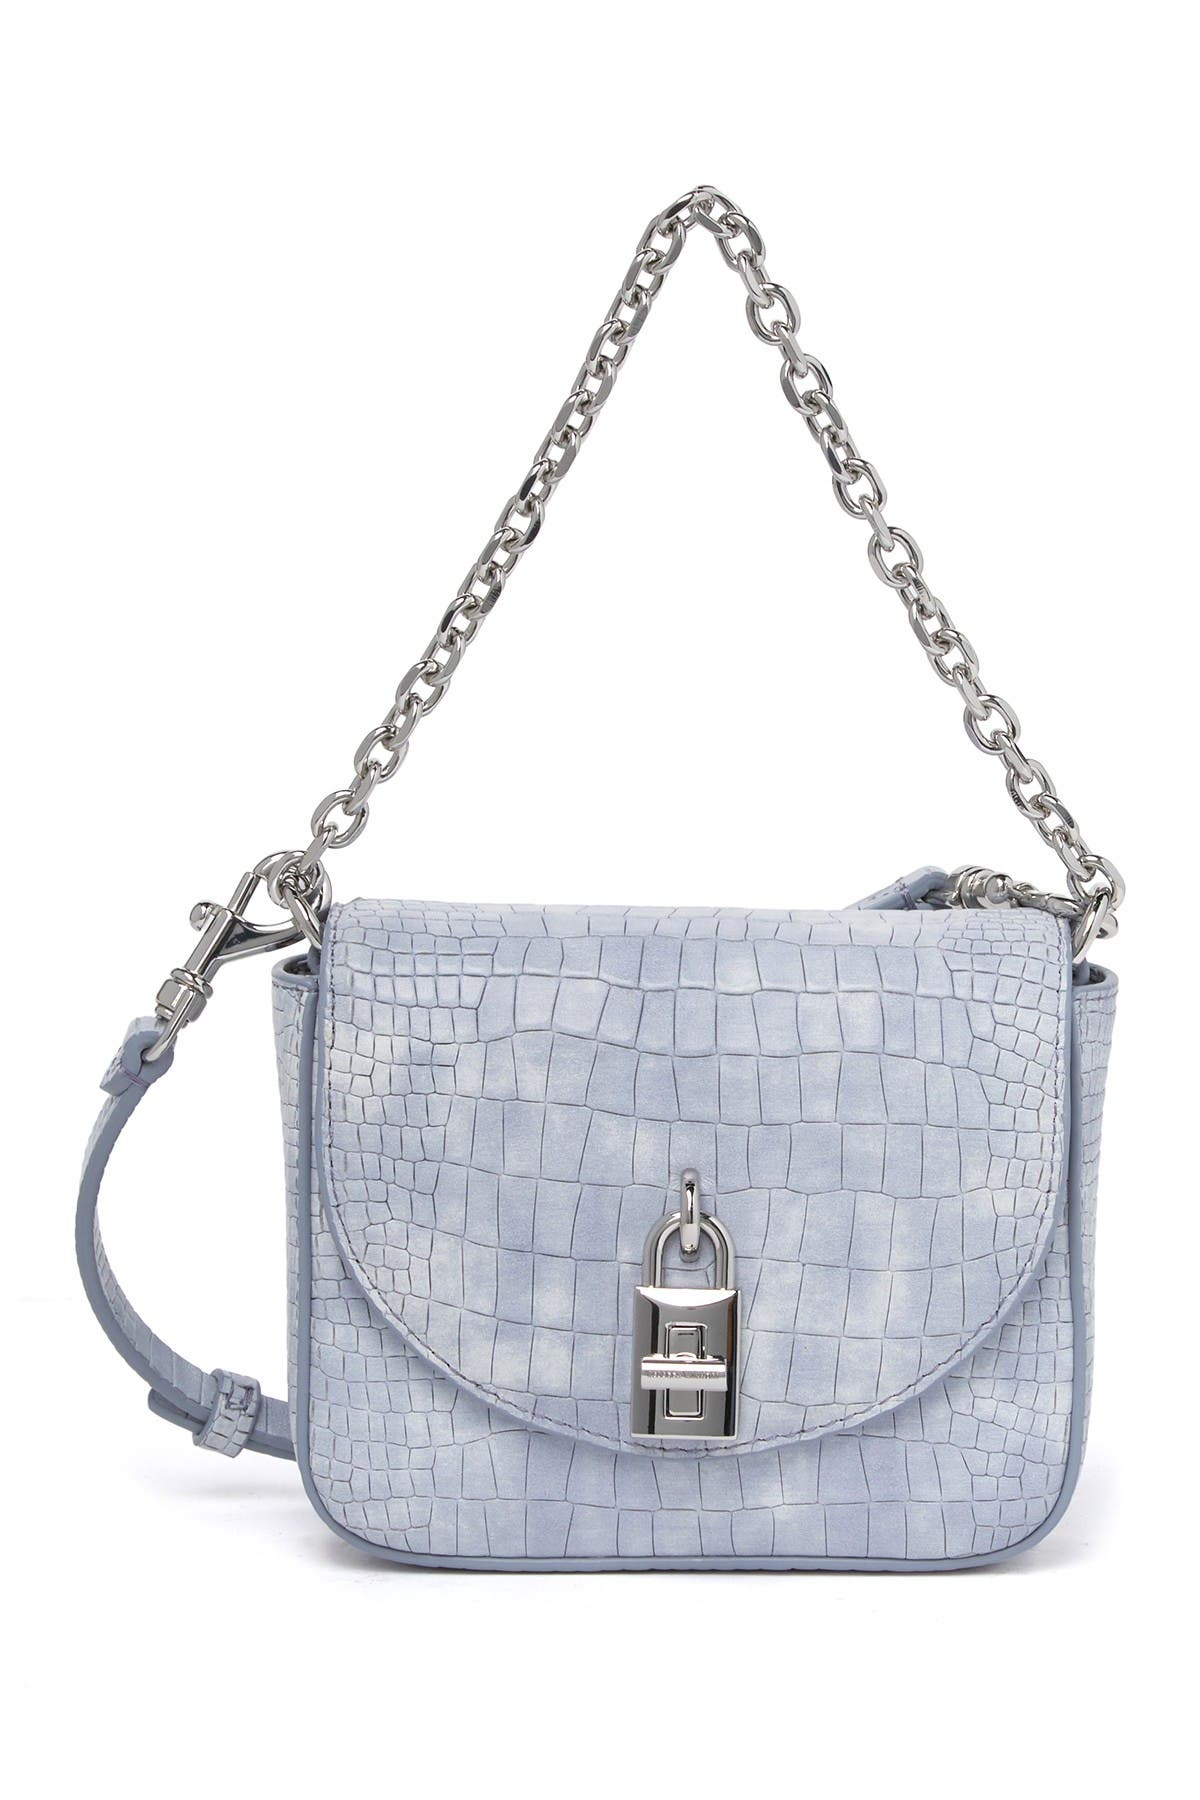 Image of Rebecca Minkoff Love Too Croc Embossed Leather Micro Crossbody Bag